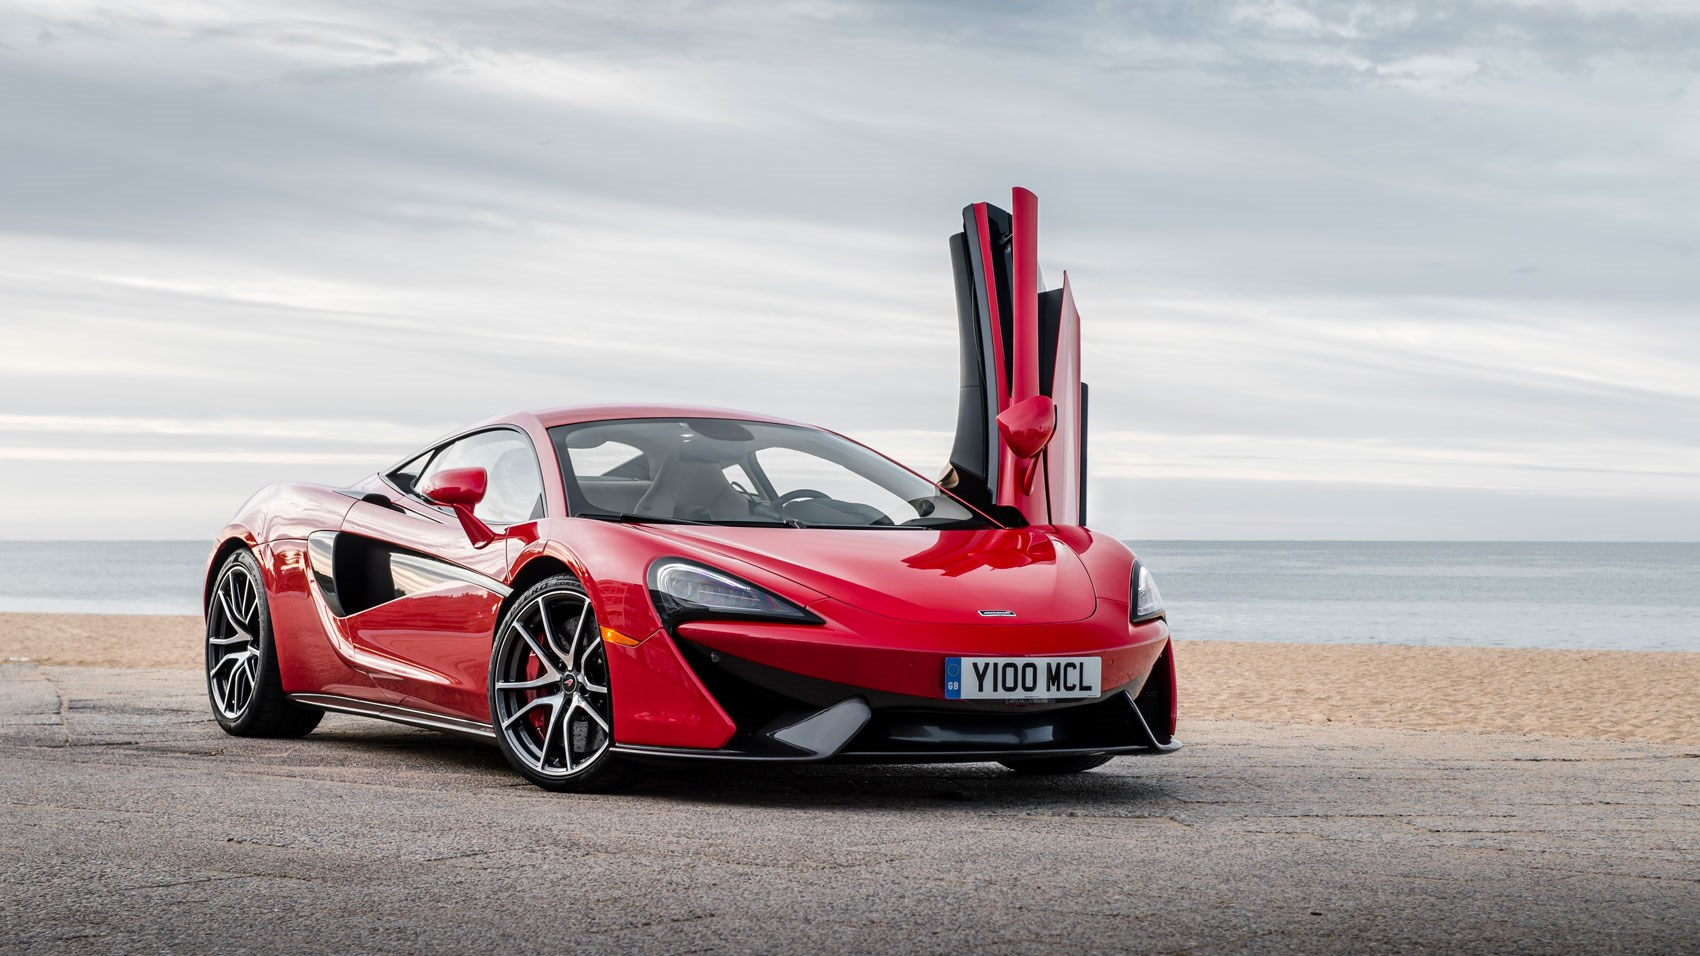 Review additionally Mclaren 570s 2015 Review also Tesla Model S Uk Review in addition Bmw 730ld Se furthermore The Ferrari 458 Italia Wcor Encor Forged Wheels. on jaguar 2014 models